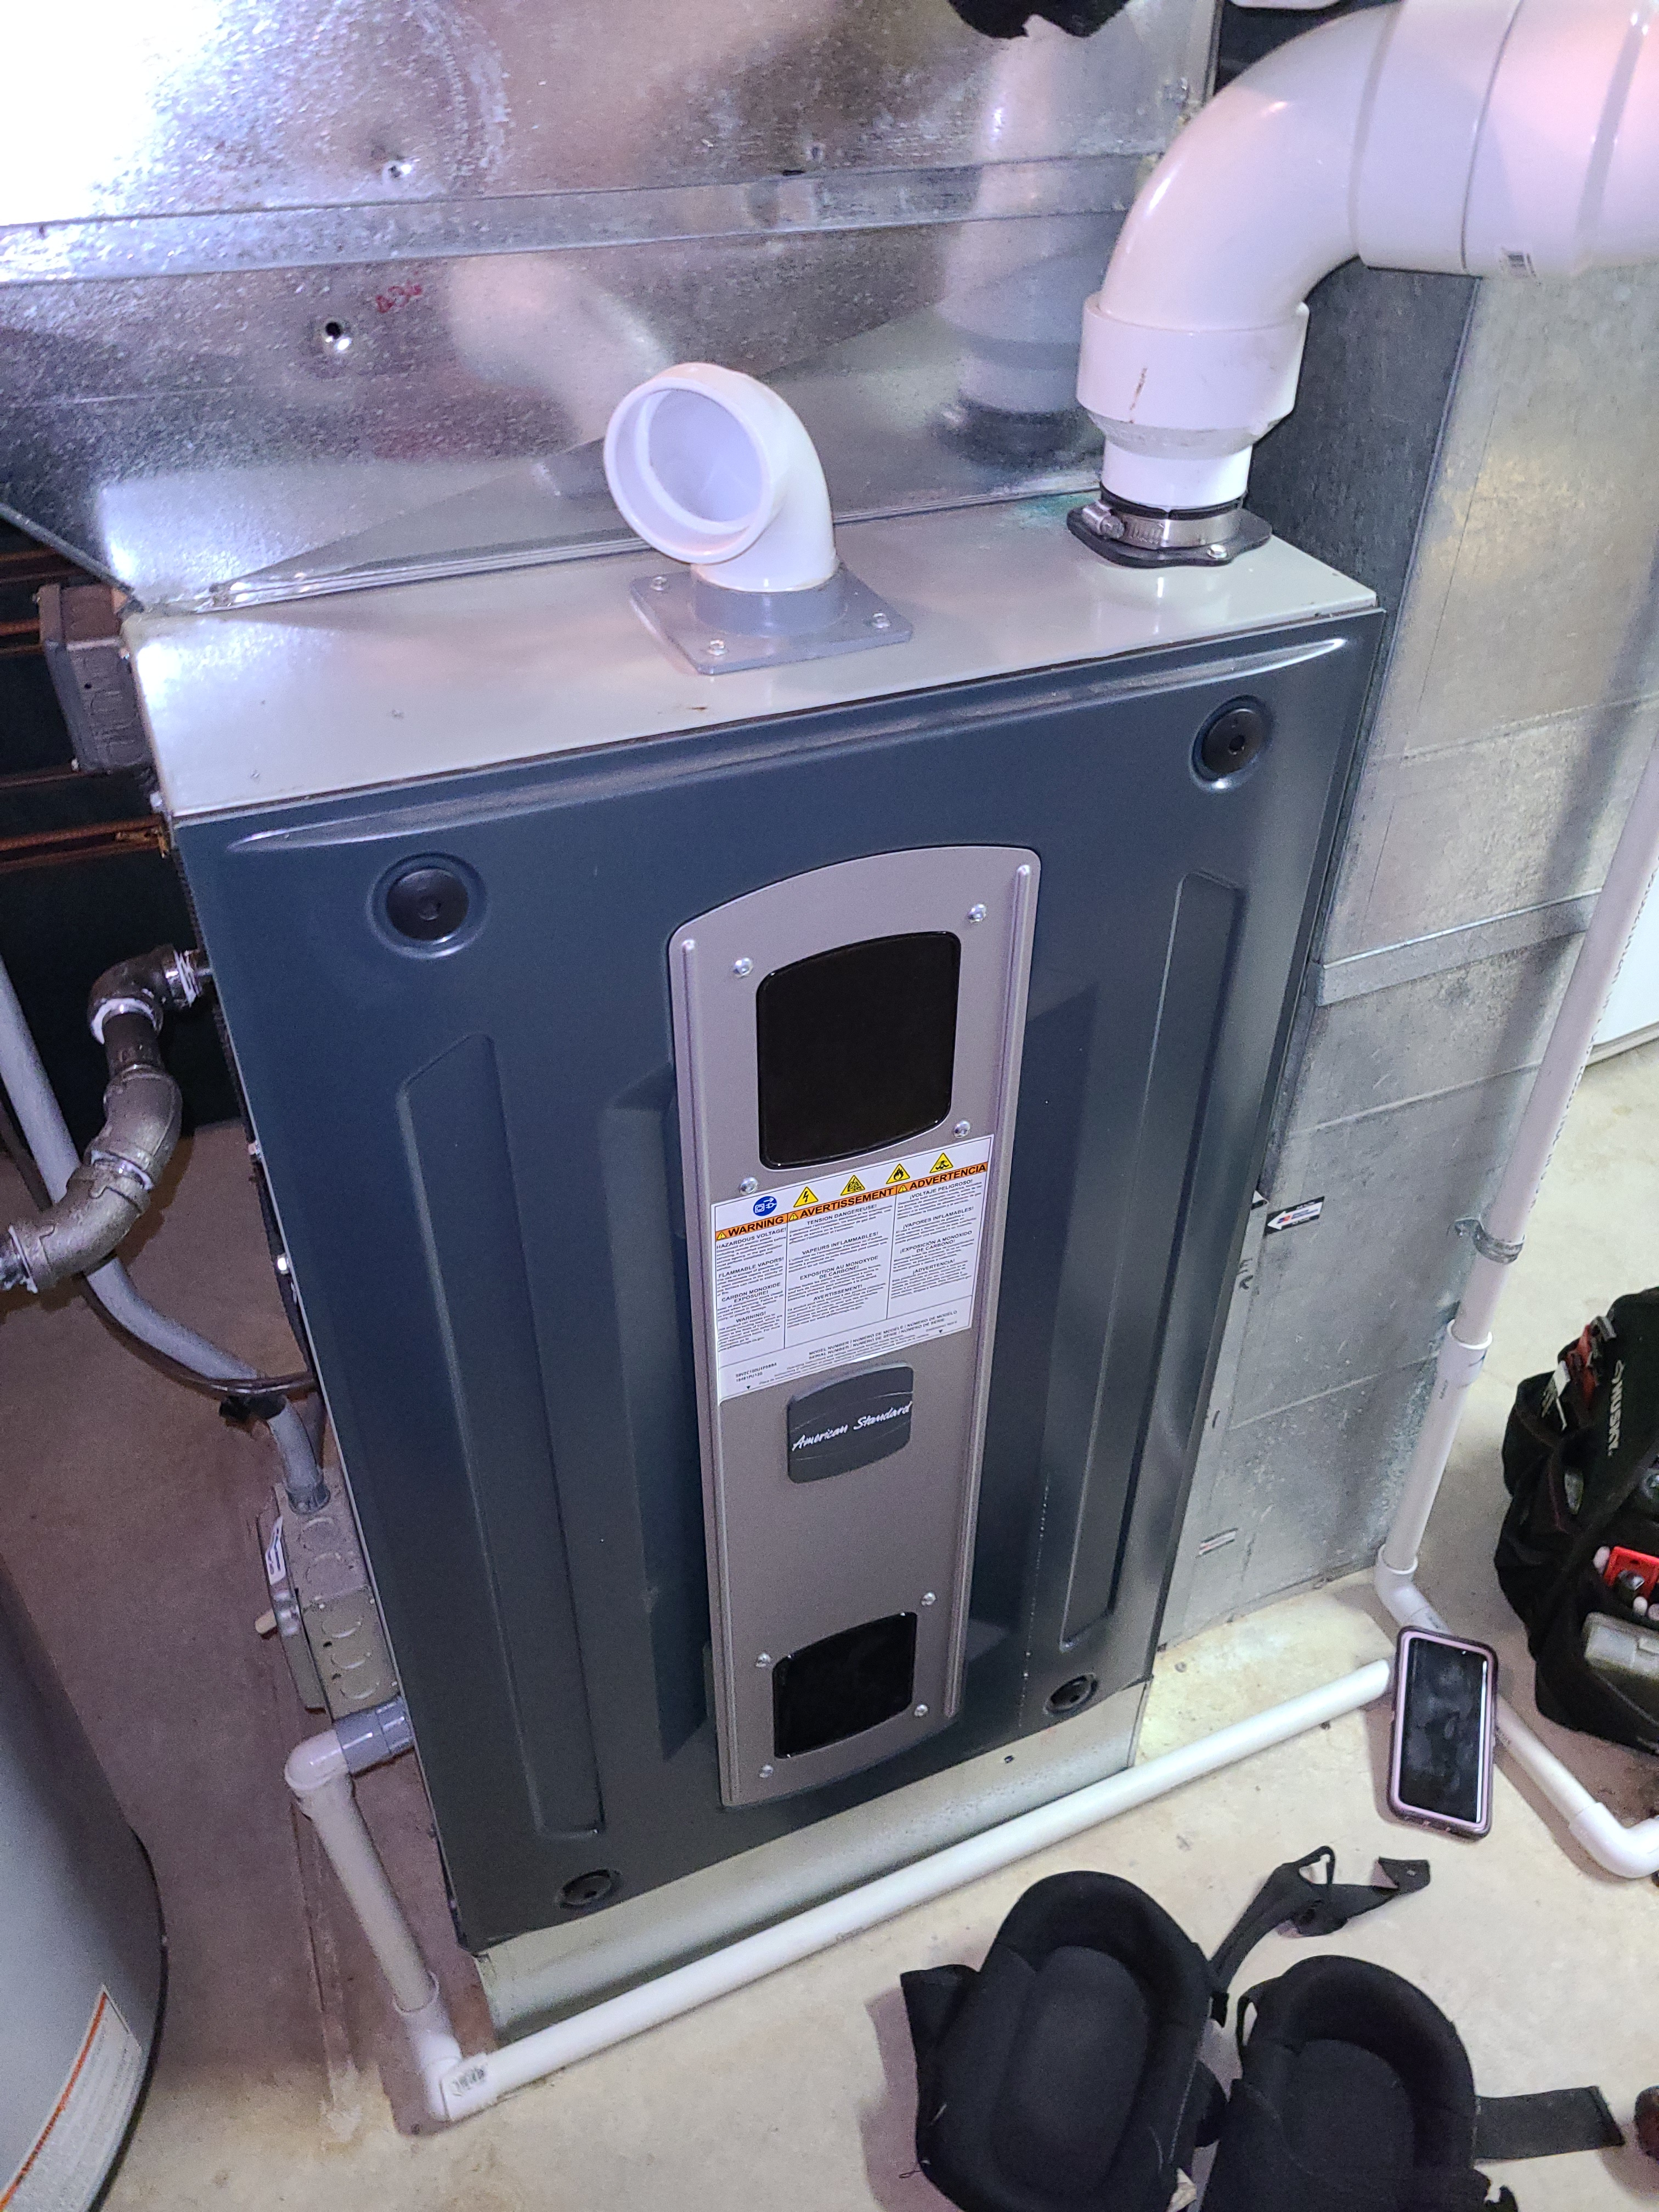 American Standard furnace fall tune up. System cleaned and checked and ready for winter.